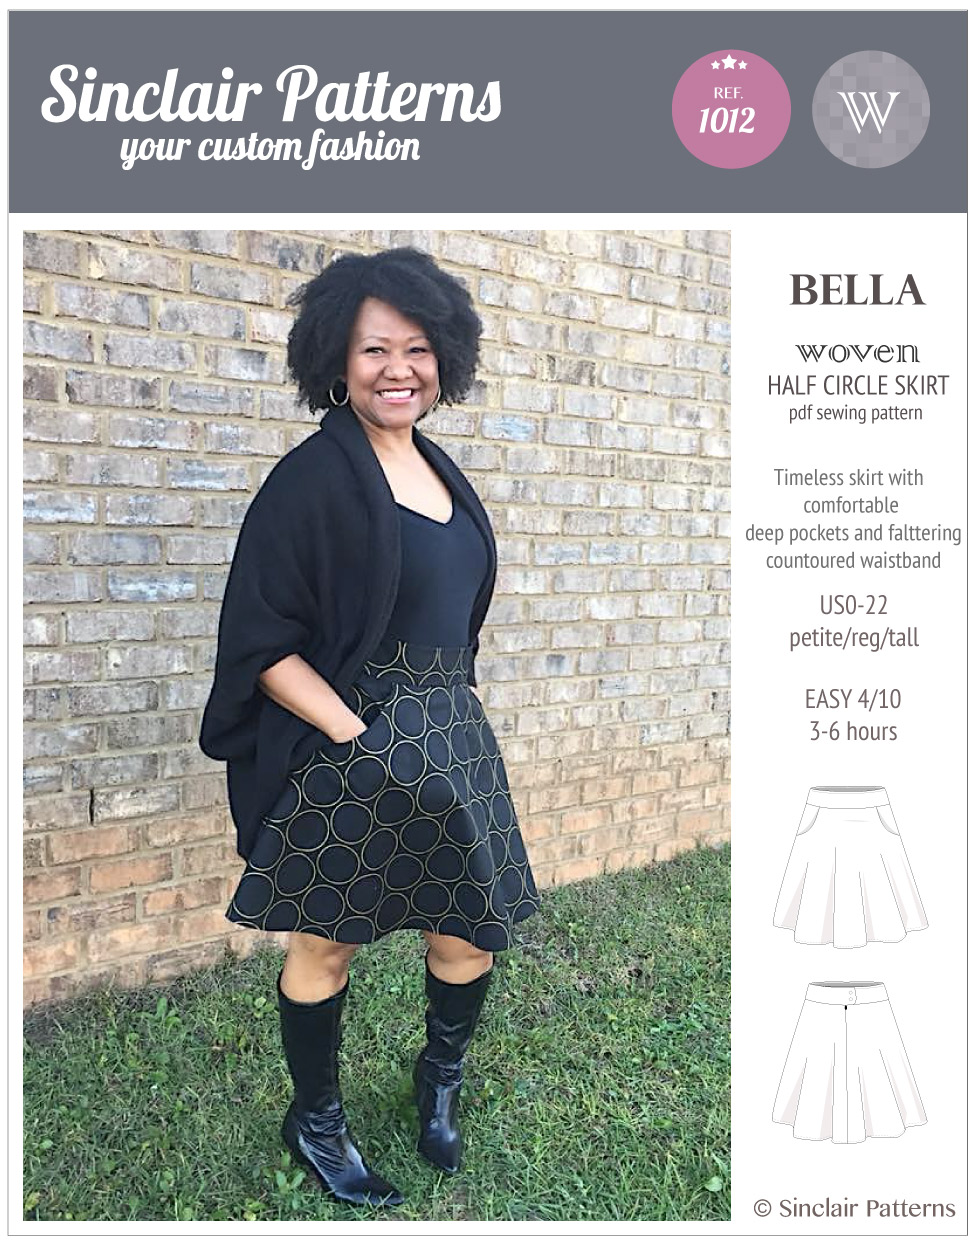 Sinclair Patterns S1012 Bella woven half circle skirt pdf sewing patternSinclair Patterns S1012 Bella woven half circle skirt pdf sewing pattern